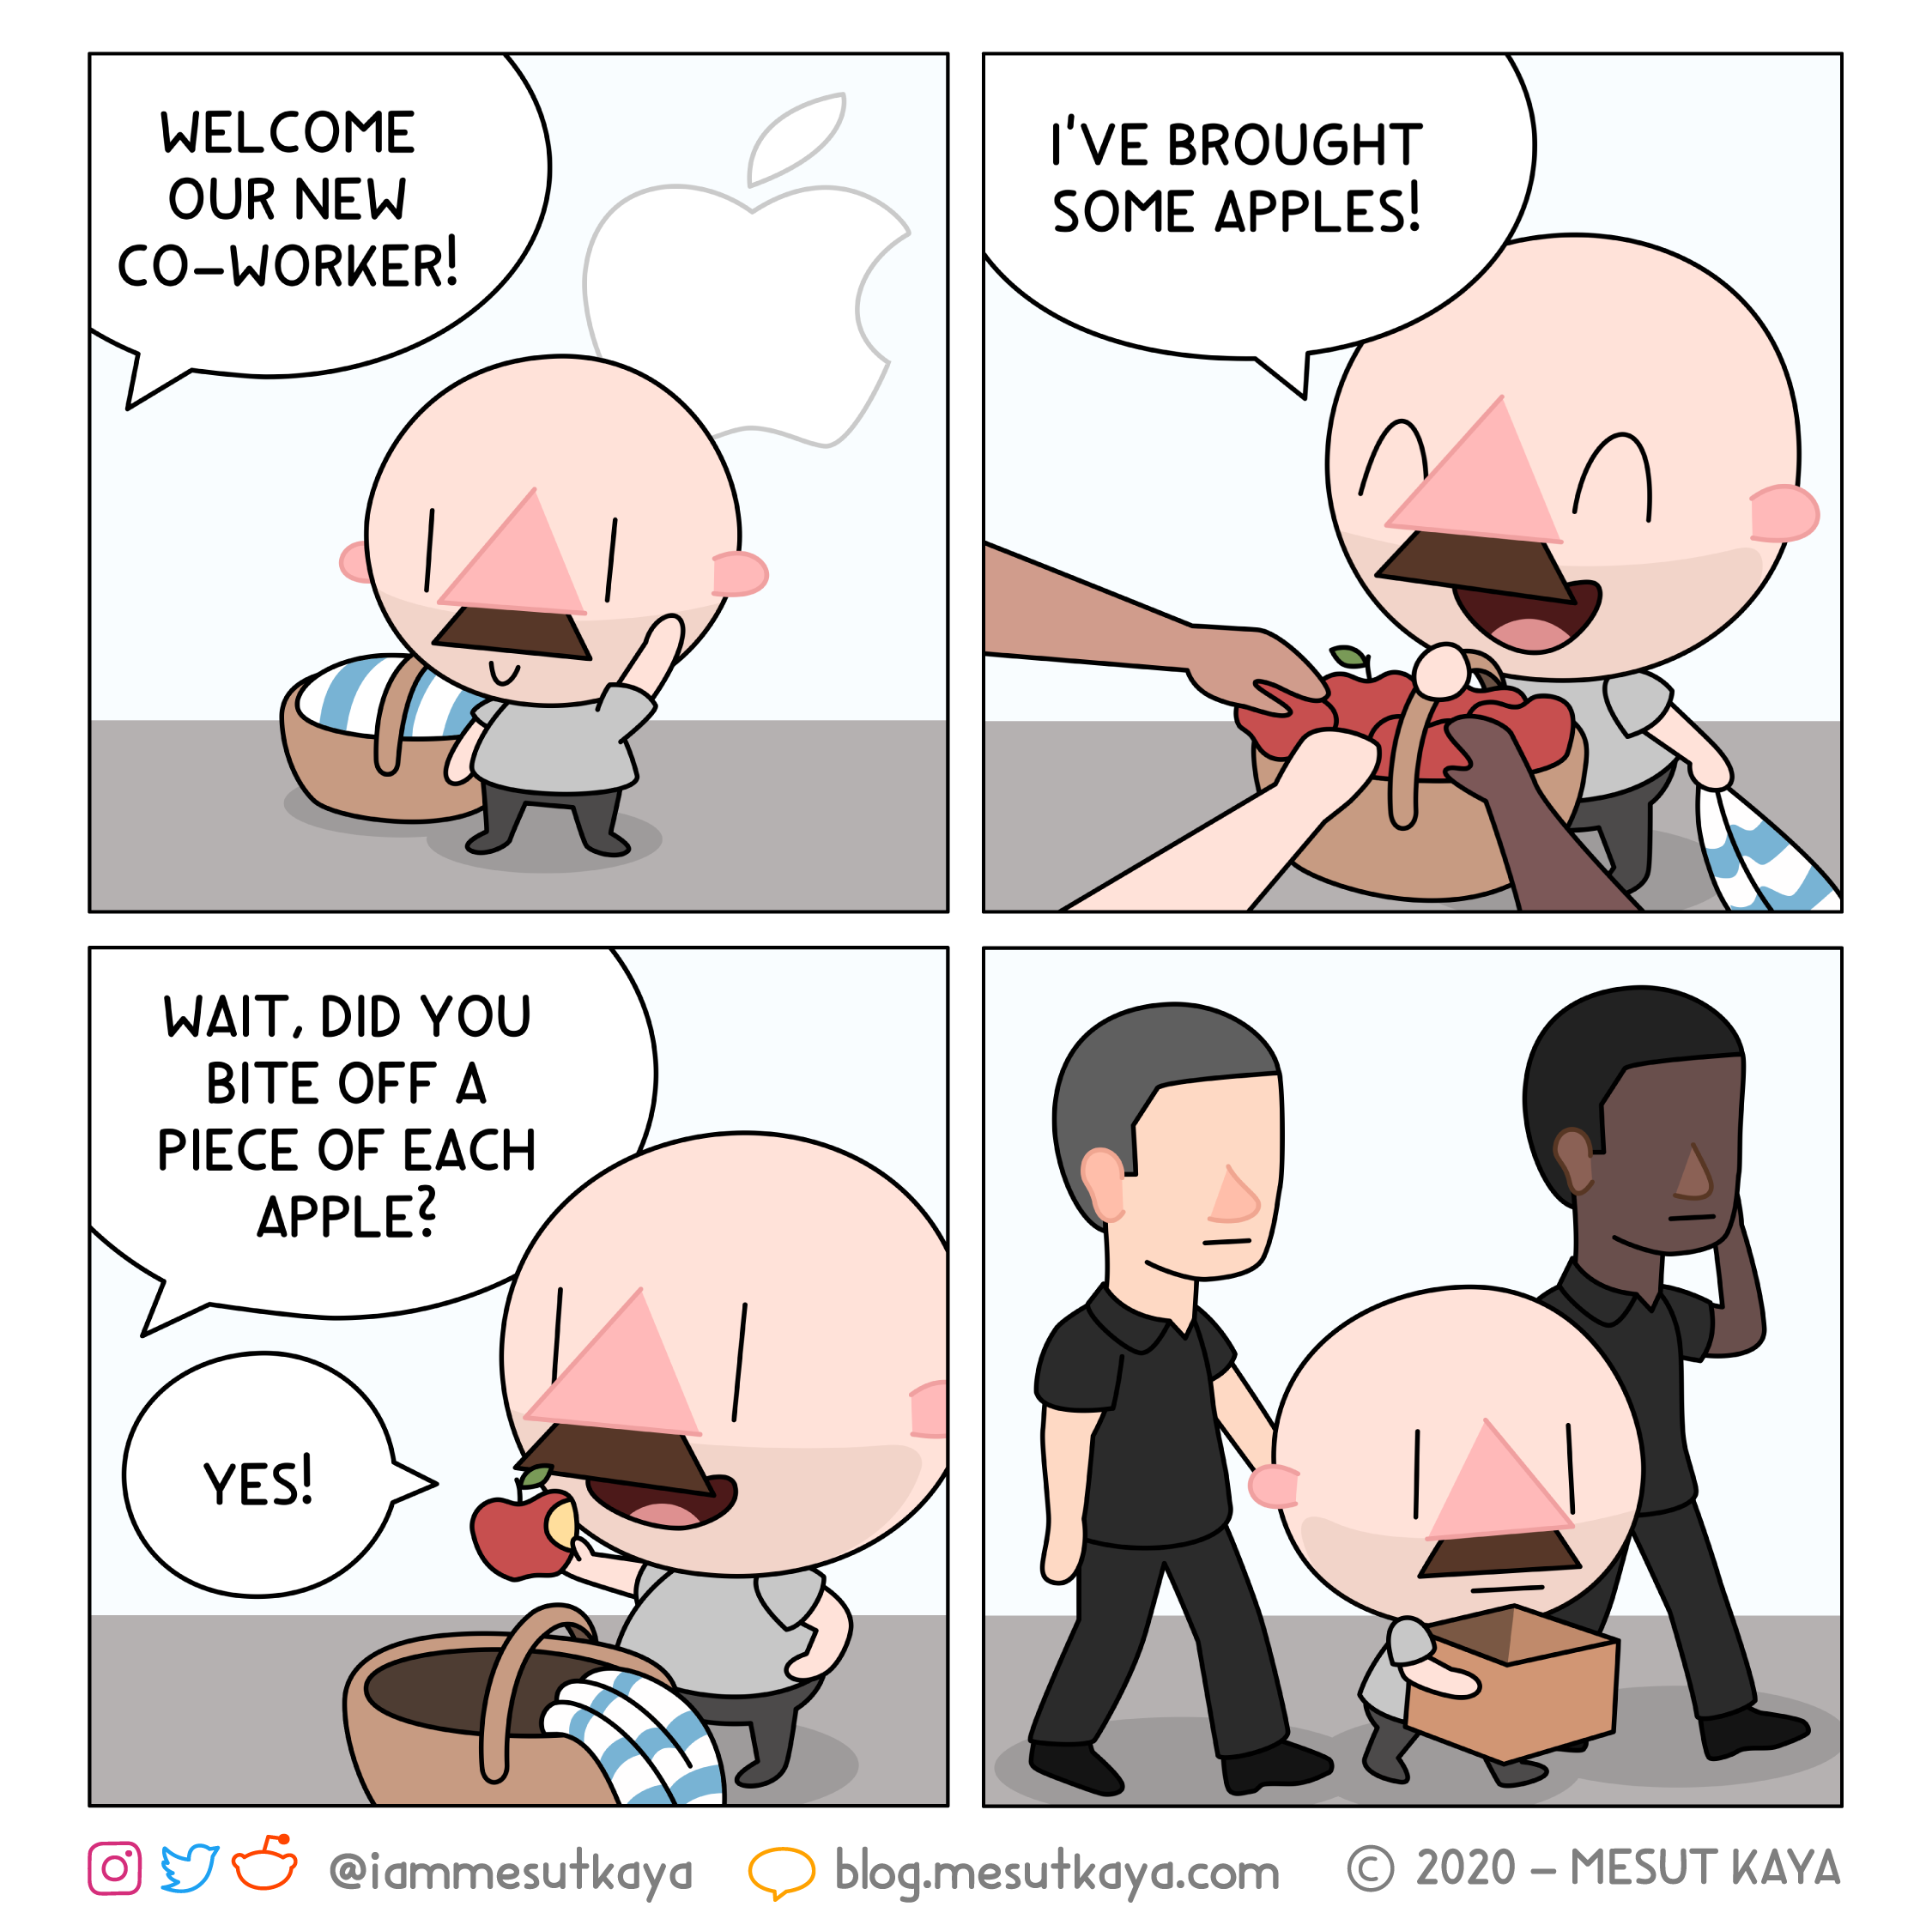 the-co-worker